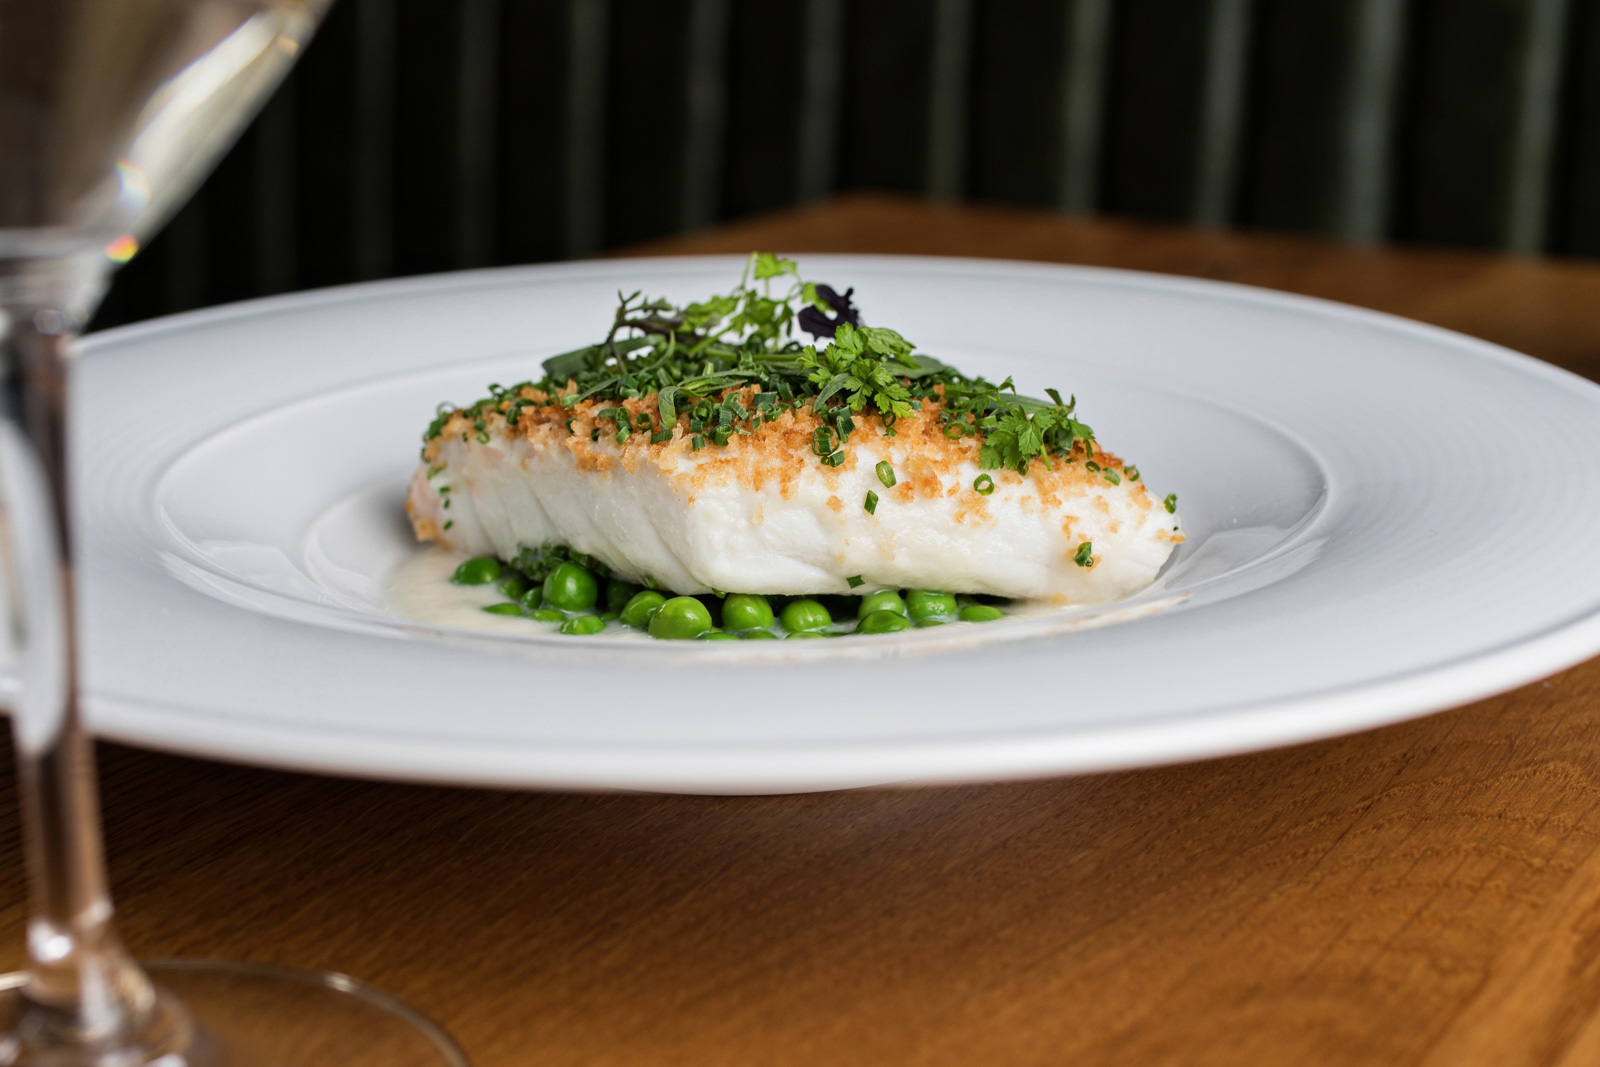 Charleston Seafood: Grouper on a Bed of Peas